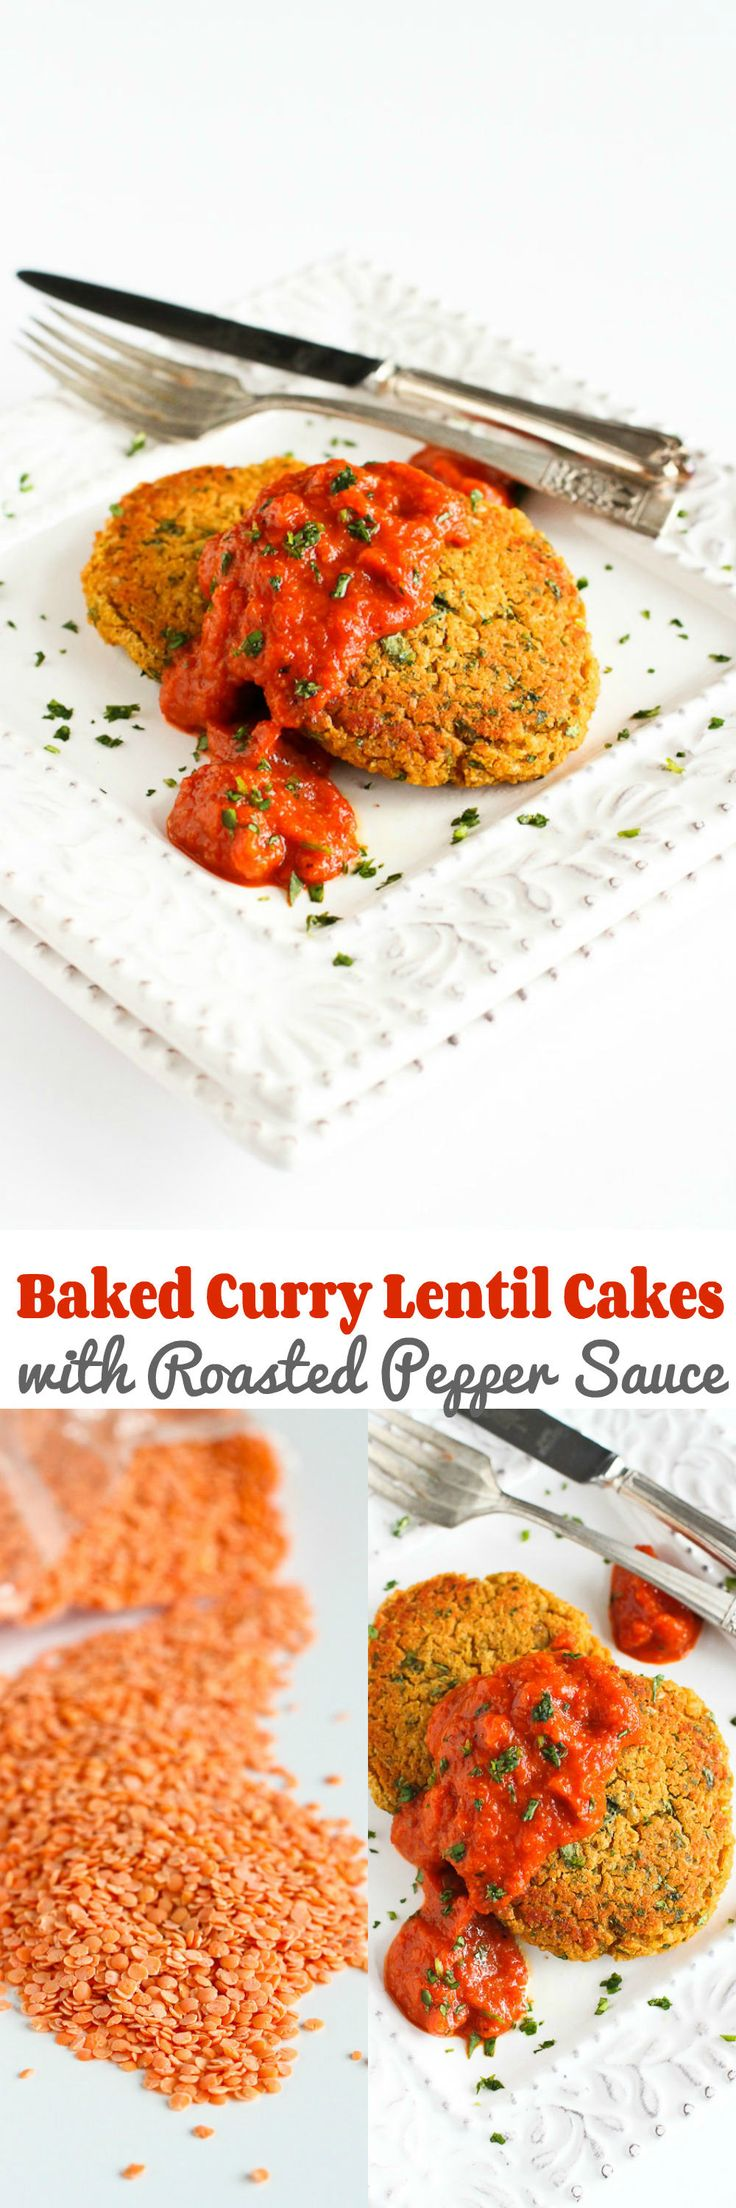 Baked Curry Lentil Cakes with Roasted Pepper Sauce Recipe…A satisfying, light vegan meal! 201 calories and 4 Weight Watcher SmartPoints